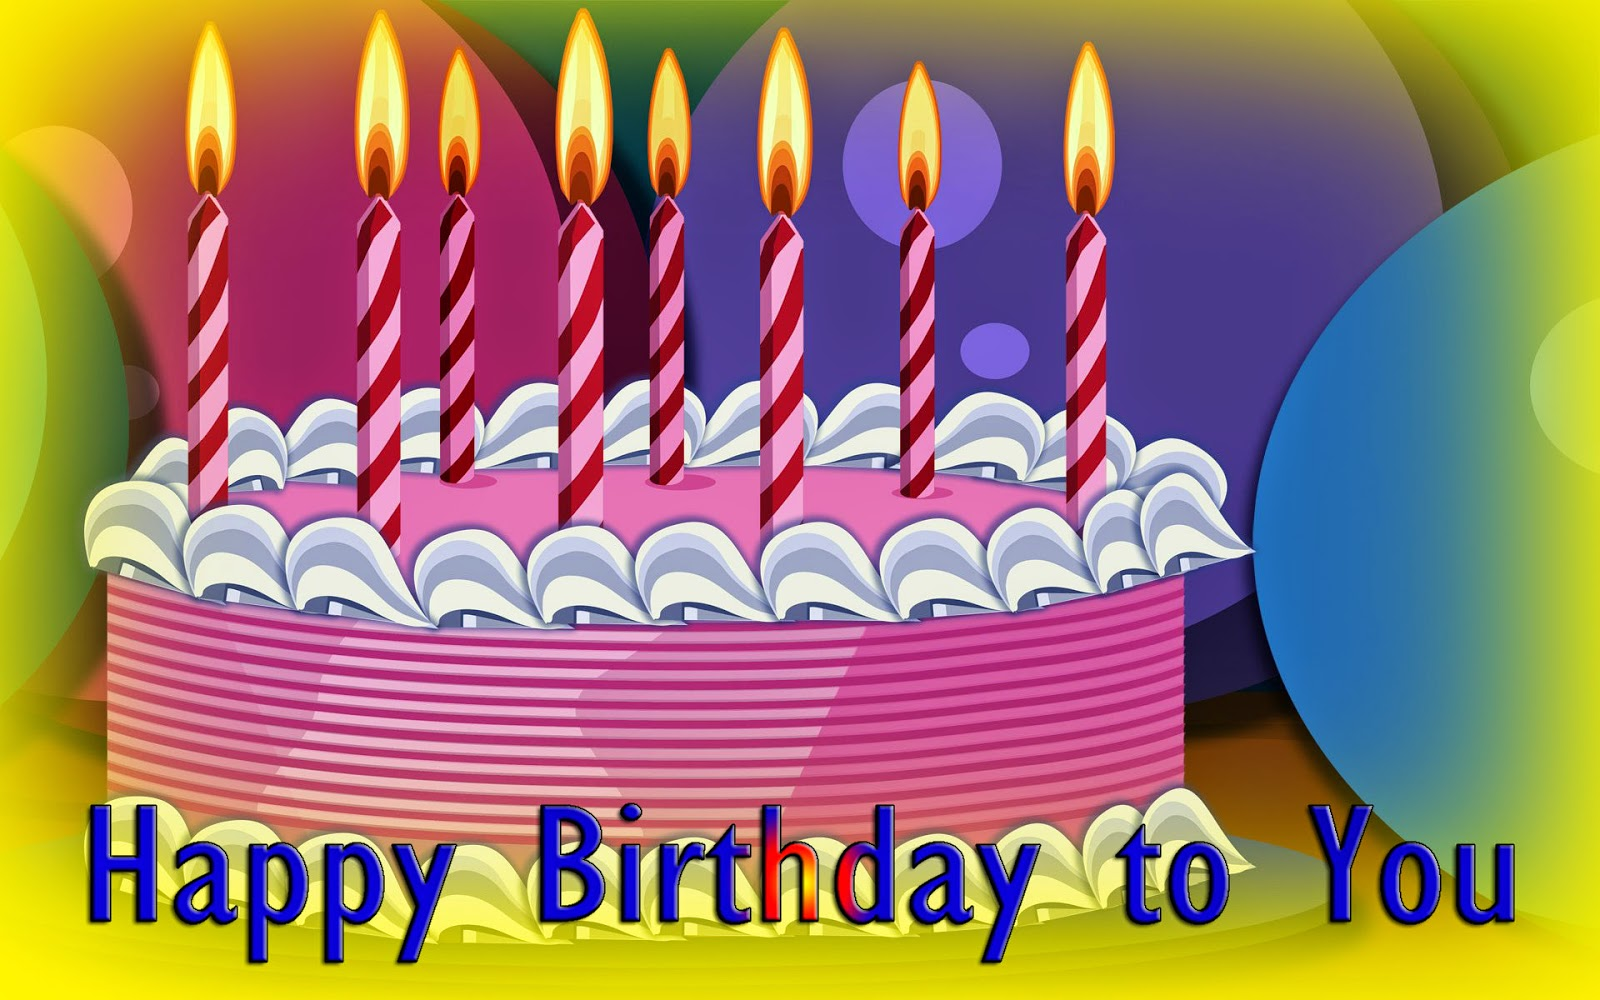 BIRTHDAY WISHES WHATSAPP VIDEO FREE DOWNLOAD Wrocawski